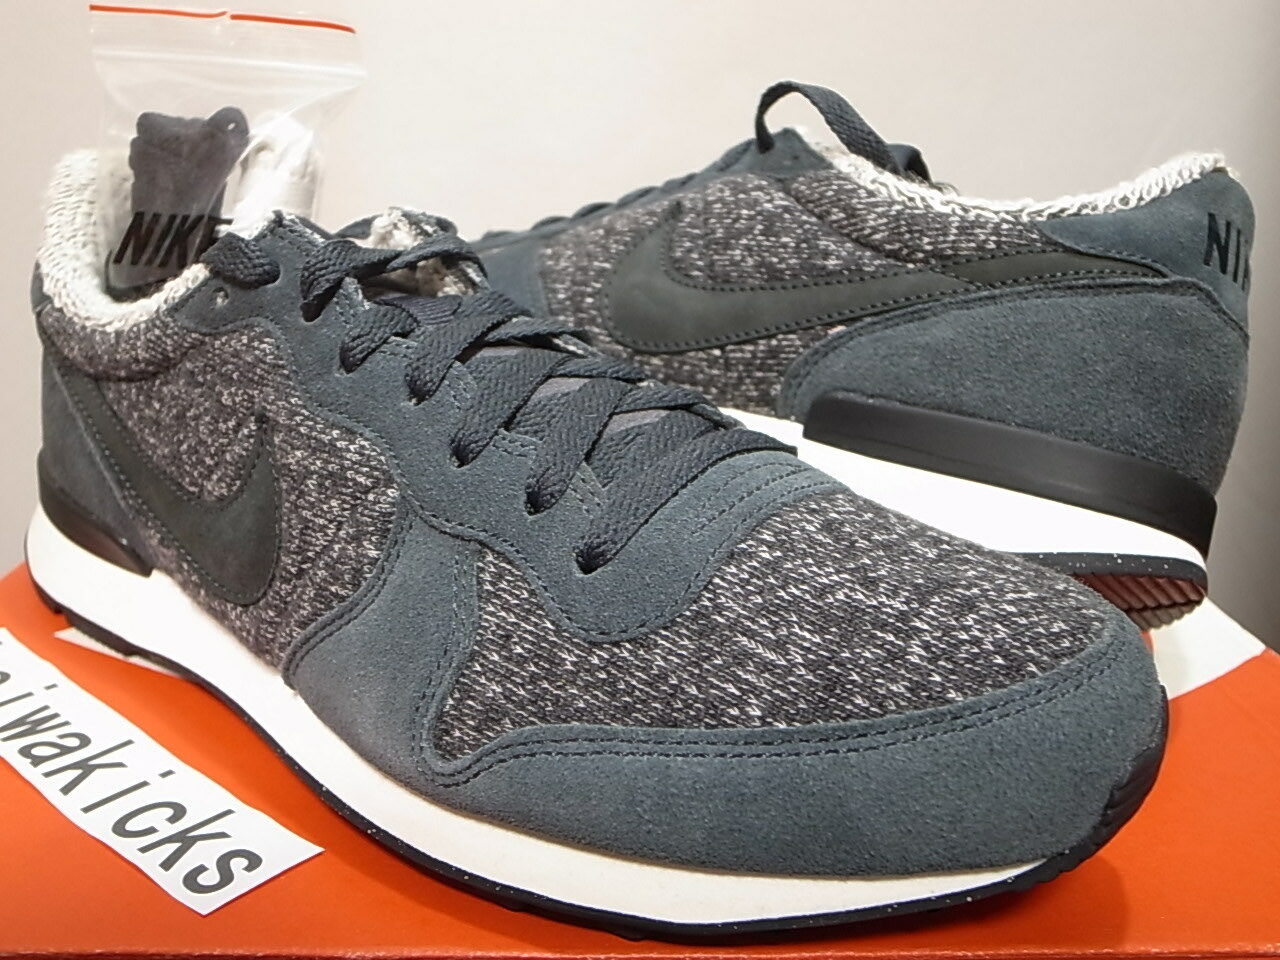 2018 LOOPWHEELER QS x NIKE INTERNATIONALIST PRM QS LOOPWHEELER JAPAN EXCLUSIVE 637998002 sz 10 7bc66d